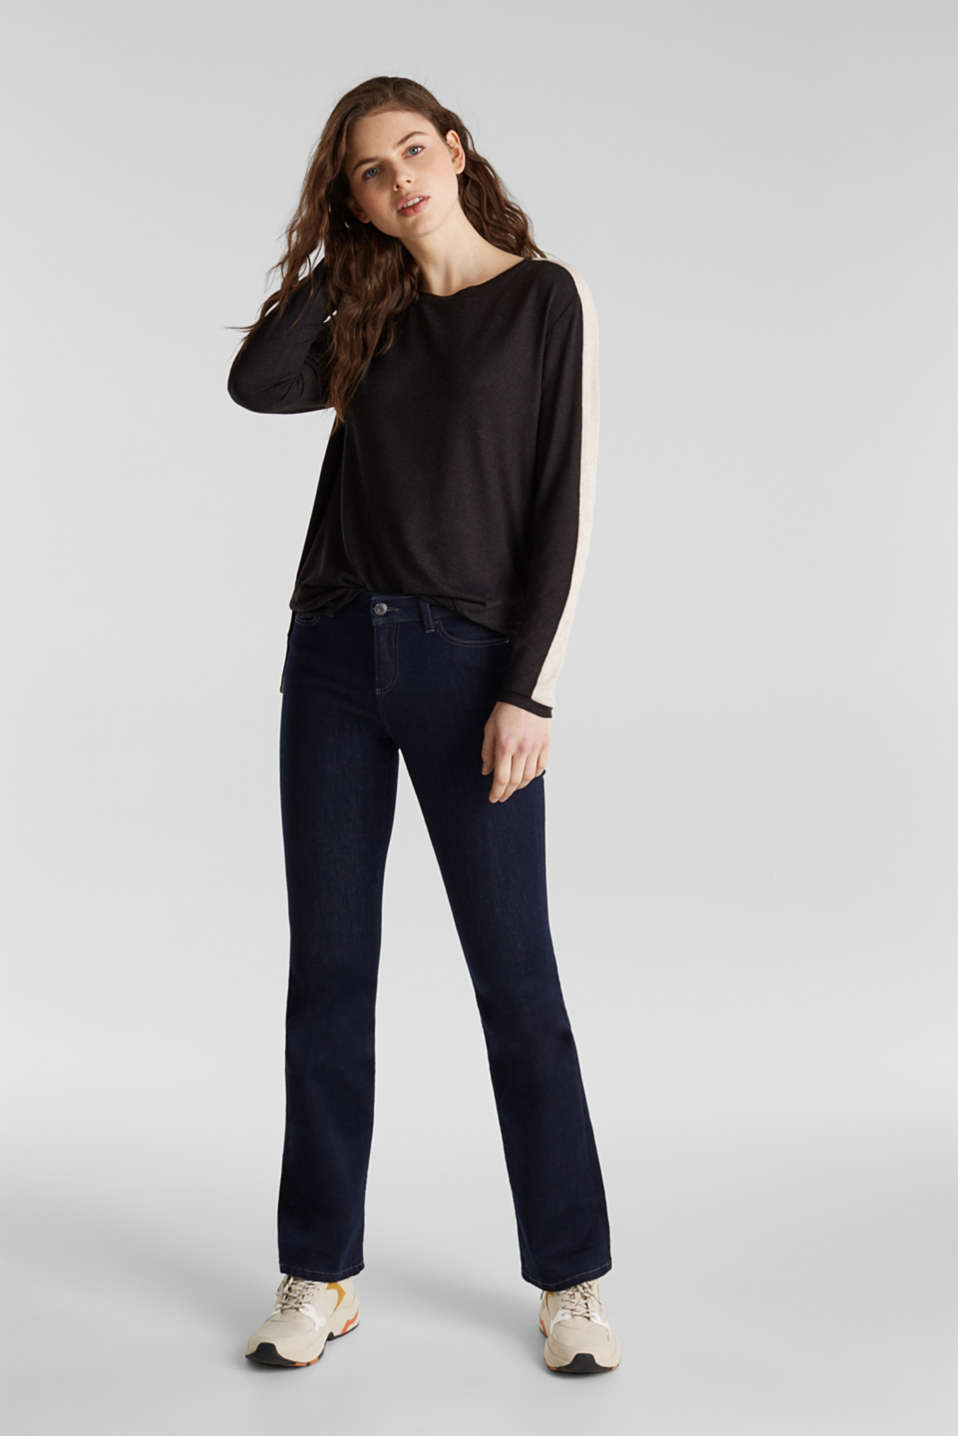 Stretch long sleeve top with knit details, BLACK, detail image number 1